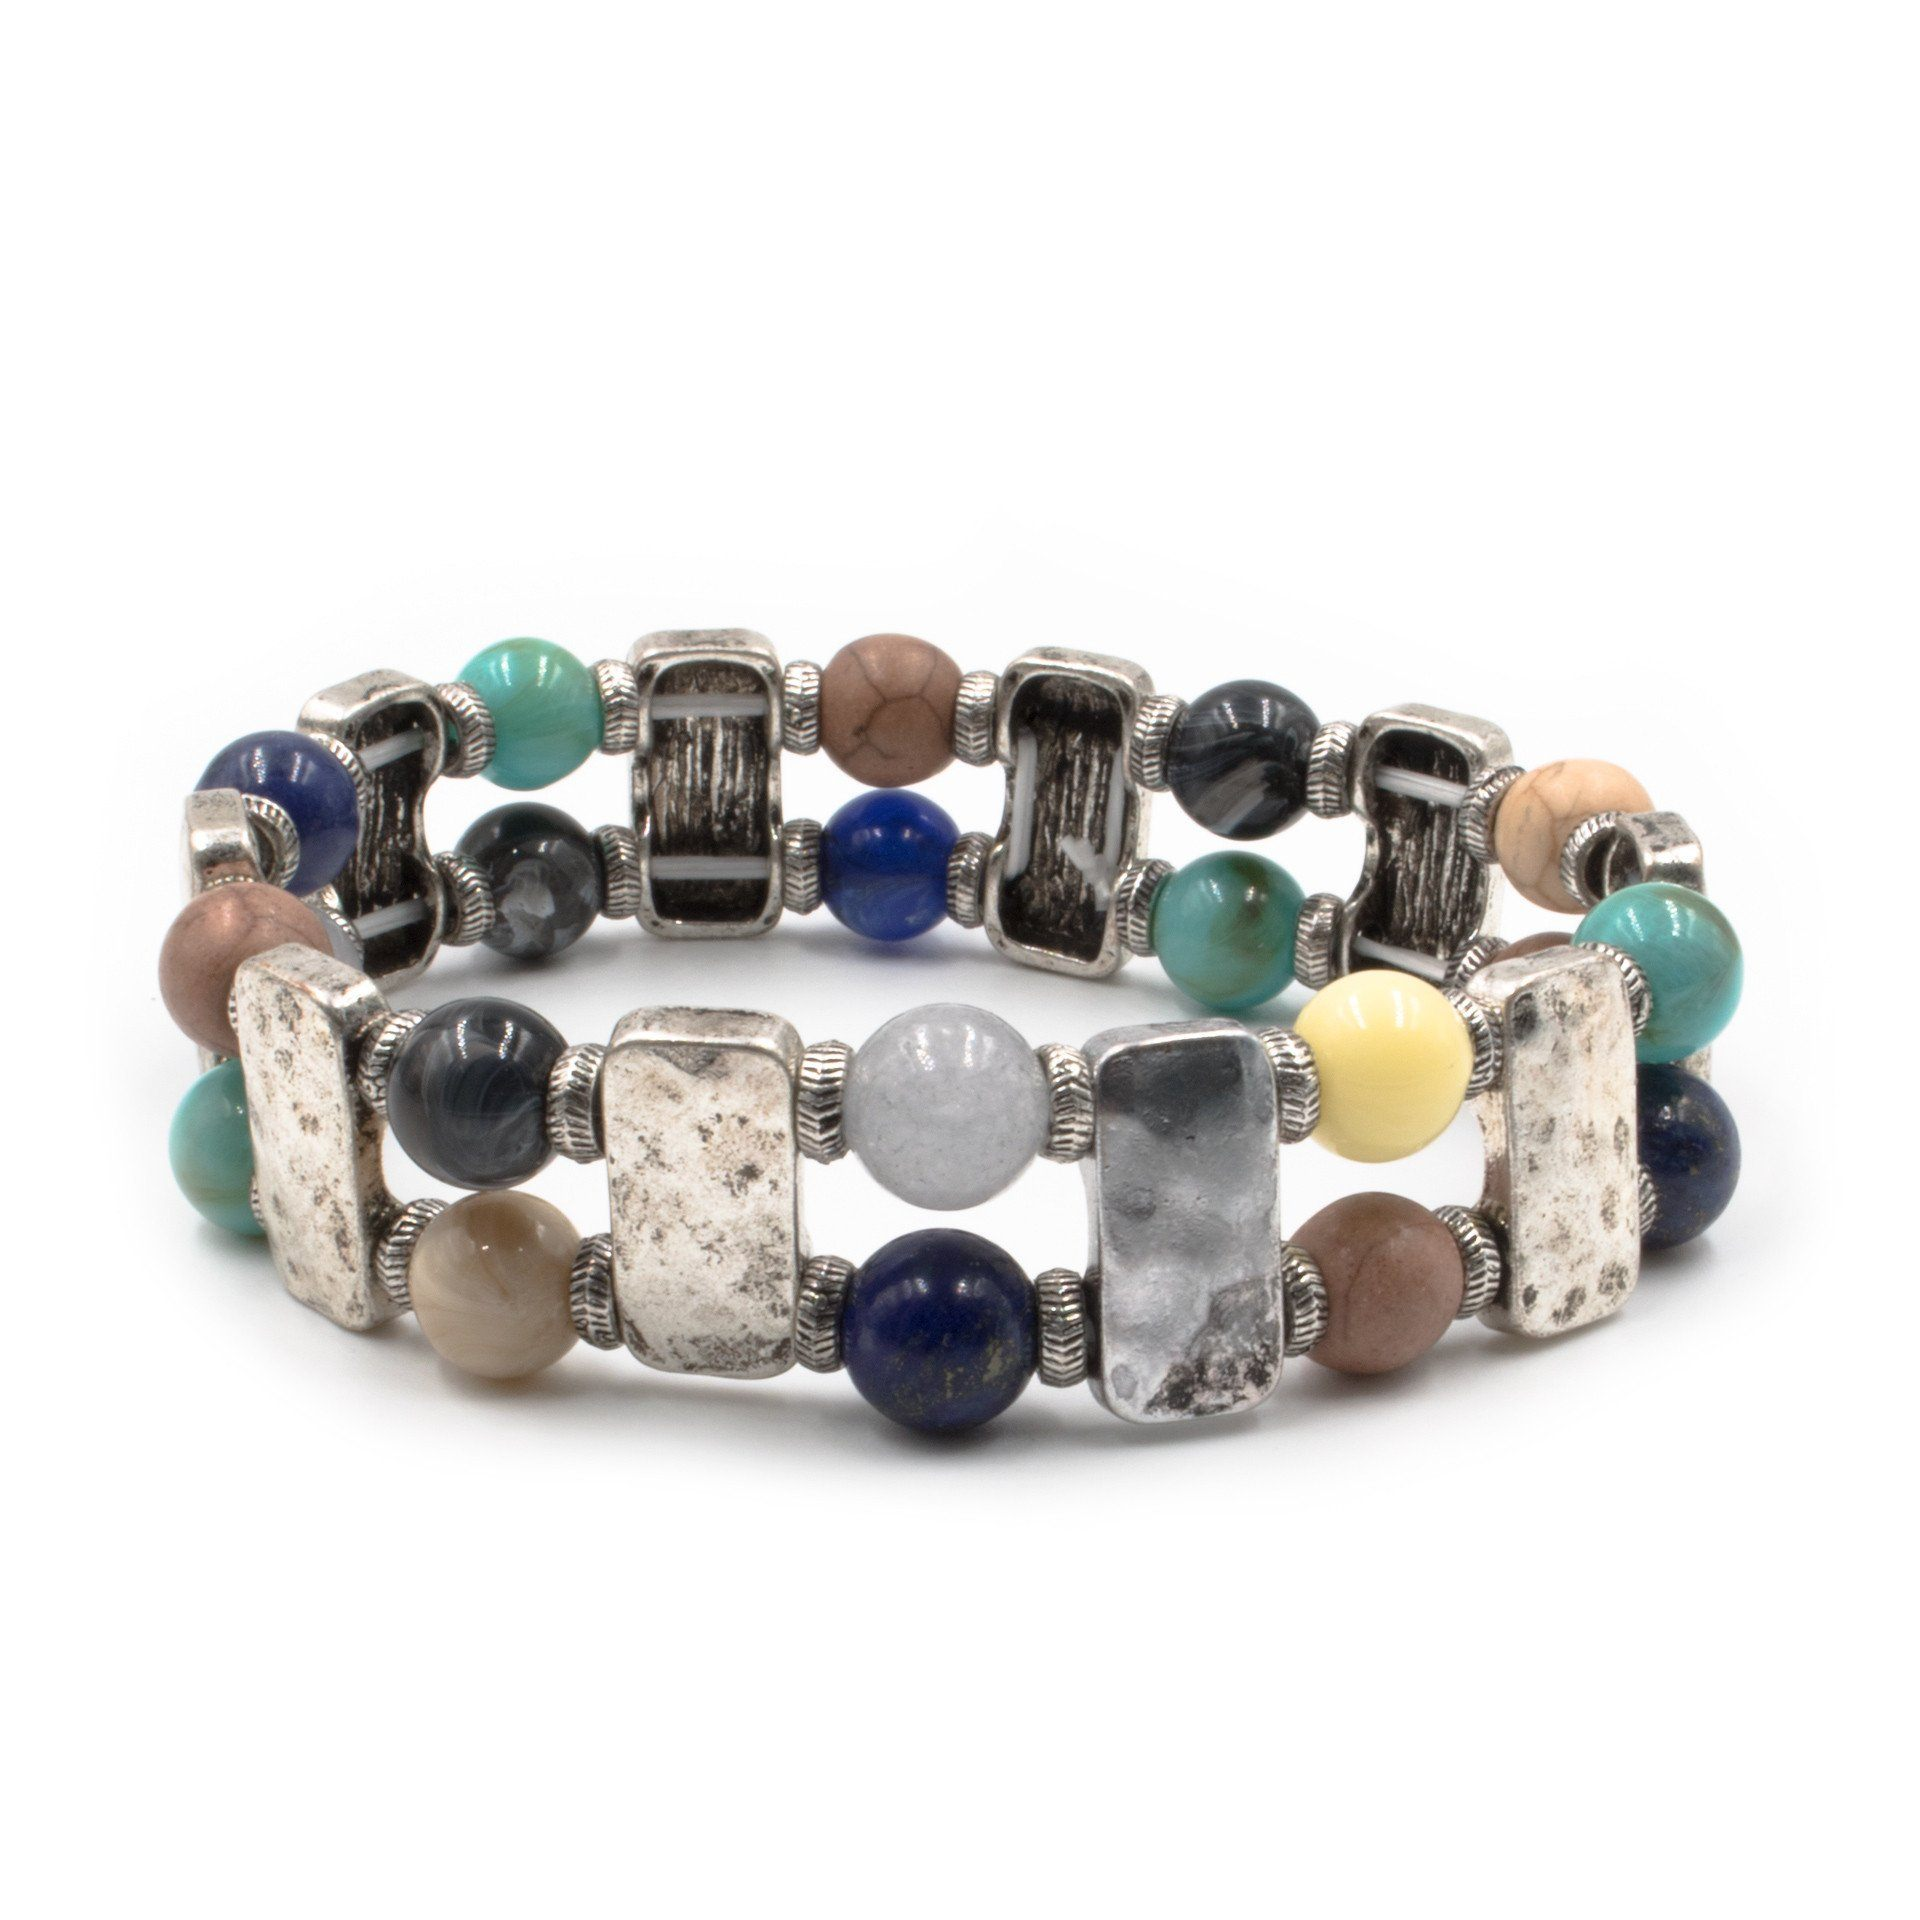 Silver Hammered Metal & Semi Precious Beads Stretch Bracelet (2 Variations) - Arlo and Arrows